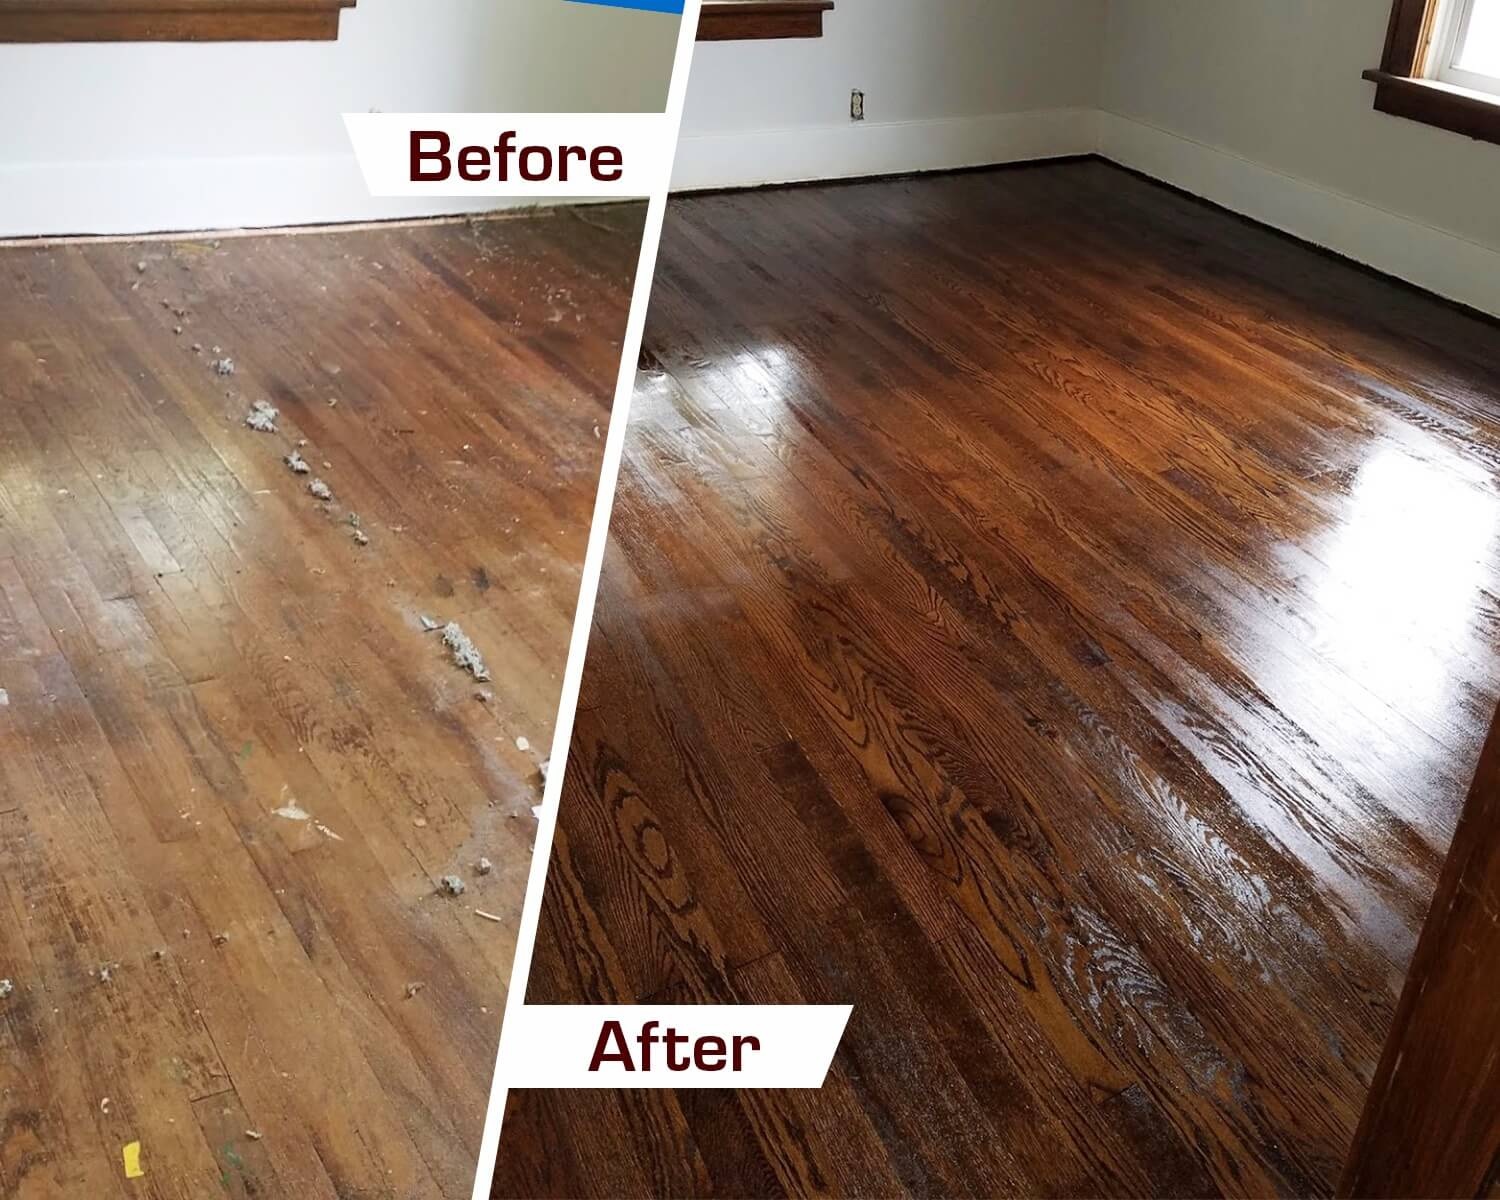 Before and After wood floor refinishing Atlanta, GA